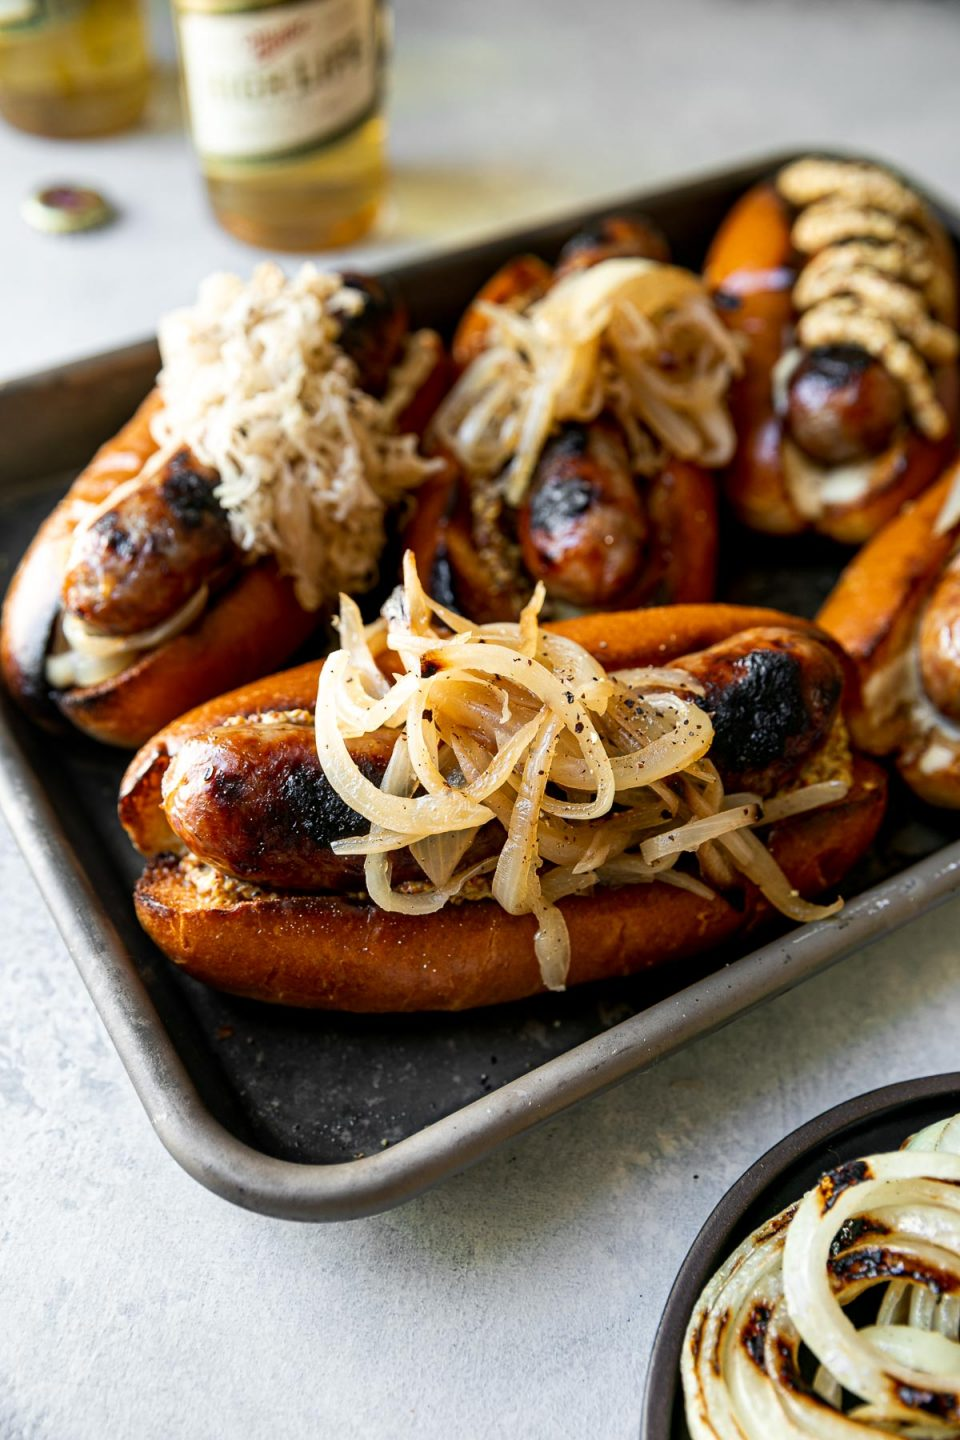 Grilled Wisconsin Beer Brats arranged on a small Nordicware baking sheet. The brats sit on toasted brioche buns, topped with mayonnaise, mustard, braised onions, sauerkraut, etc. The baking sheet sits atop a light blue surface. In the foreground, a small black plate of grilled onions. In the background, 2 bottles of Miller High Life beer.